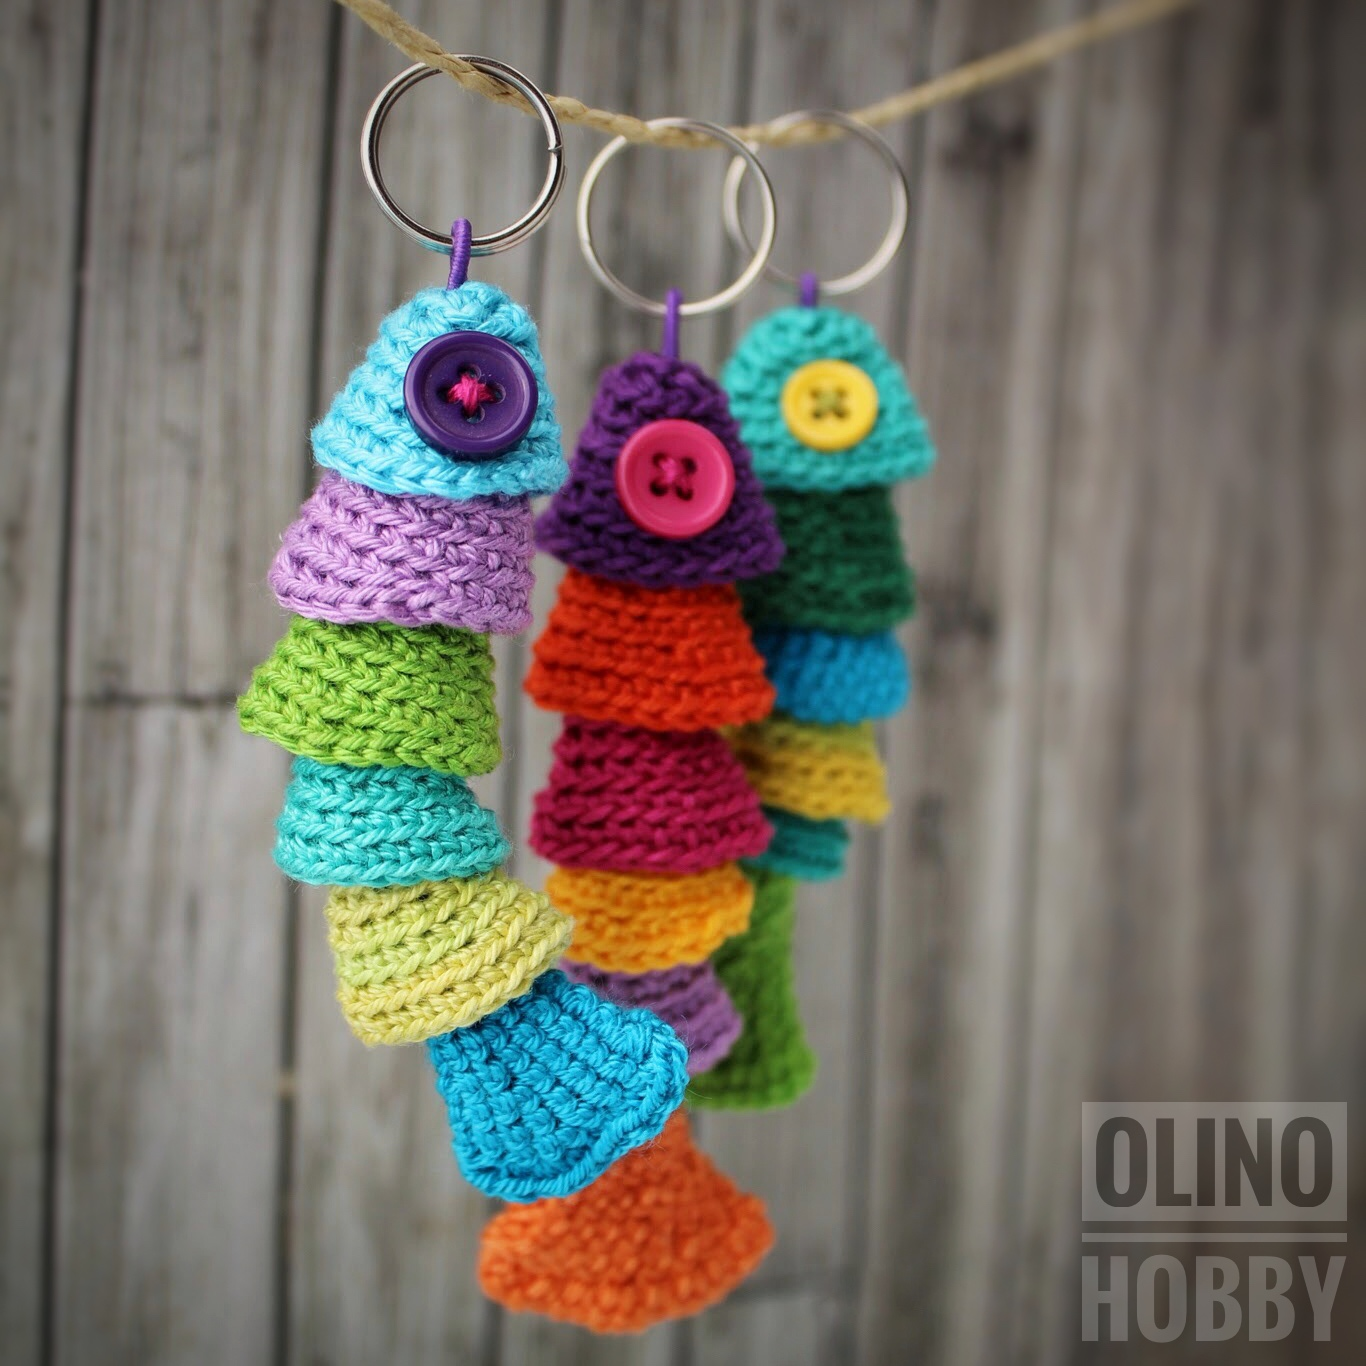 Fish Keychain Crochet Pattern $2.50